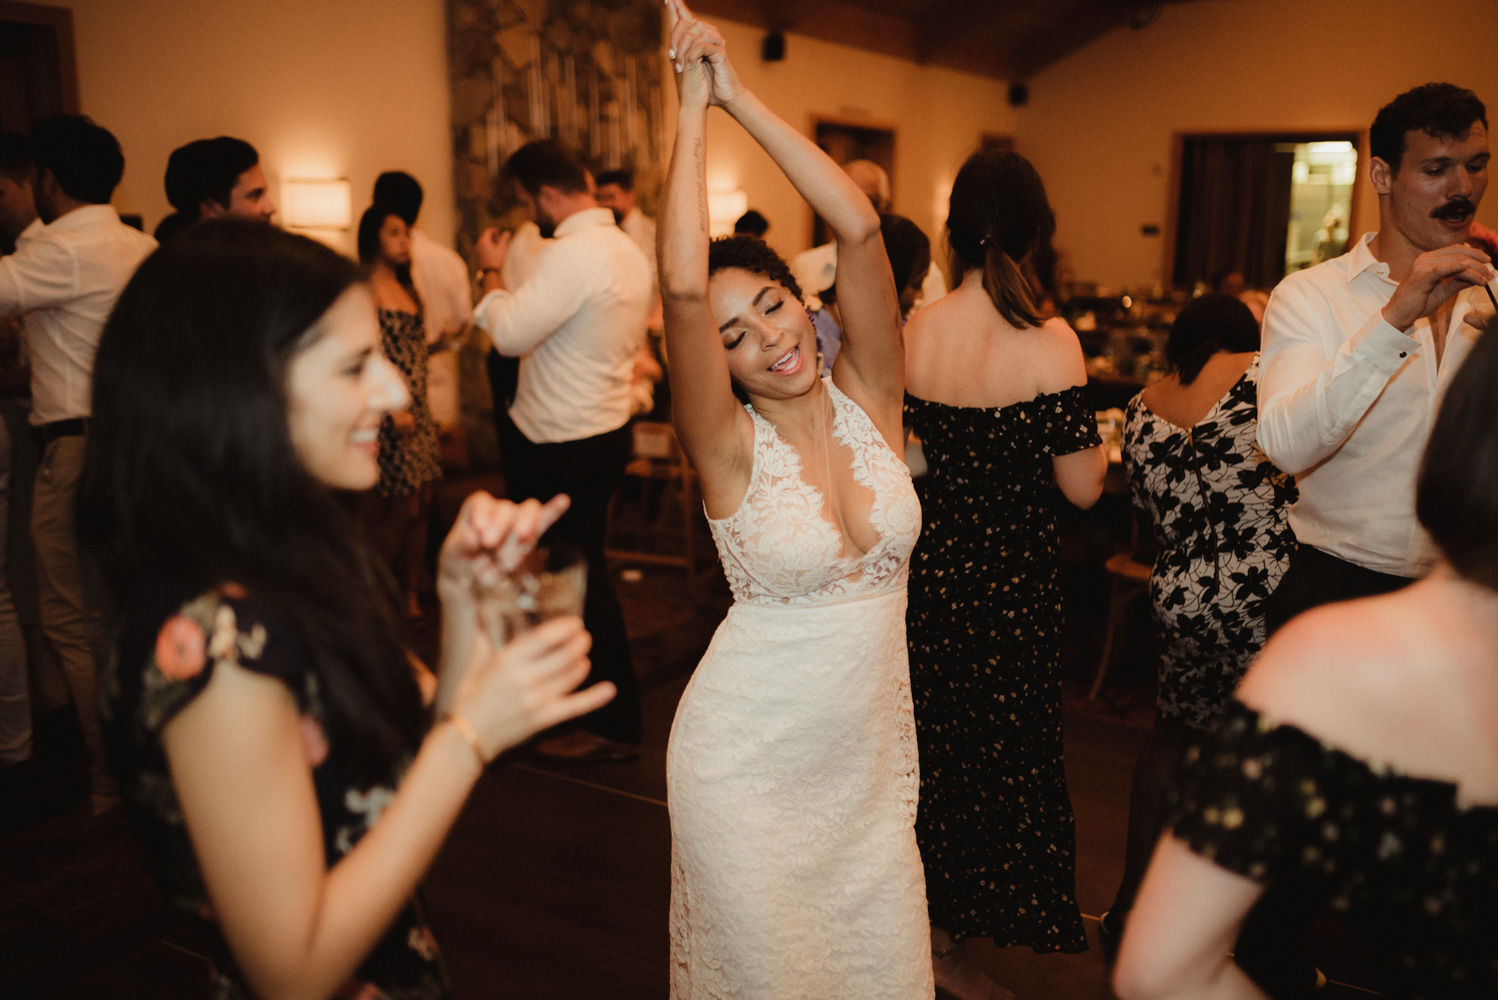 Rush Creek Lodge wedding, bride being surrounded by her friends photo